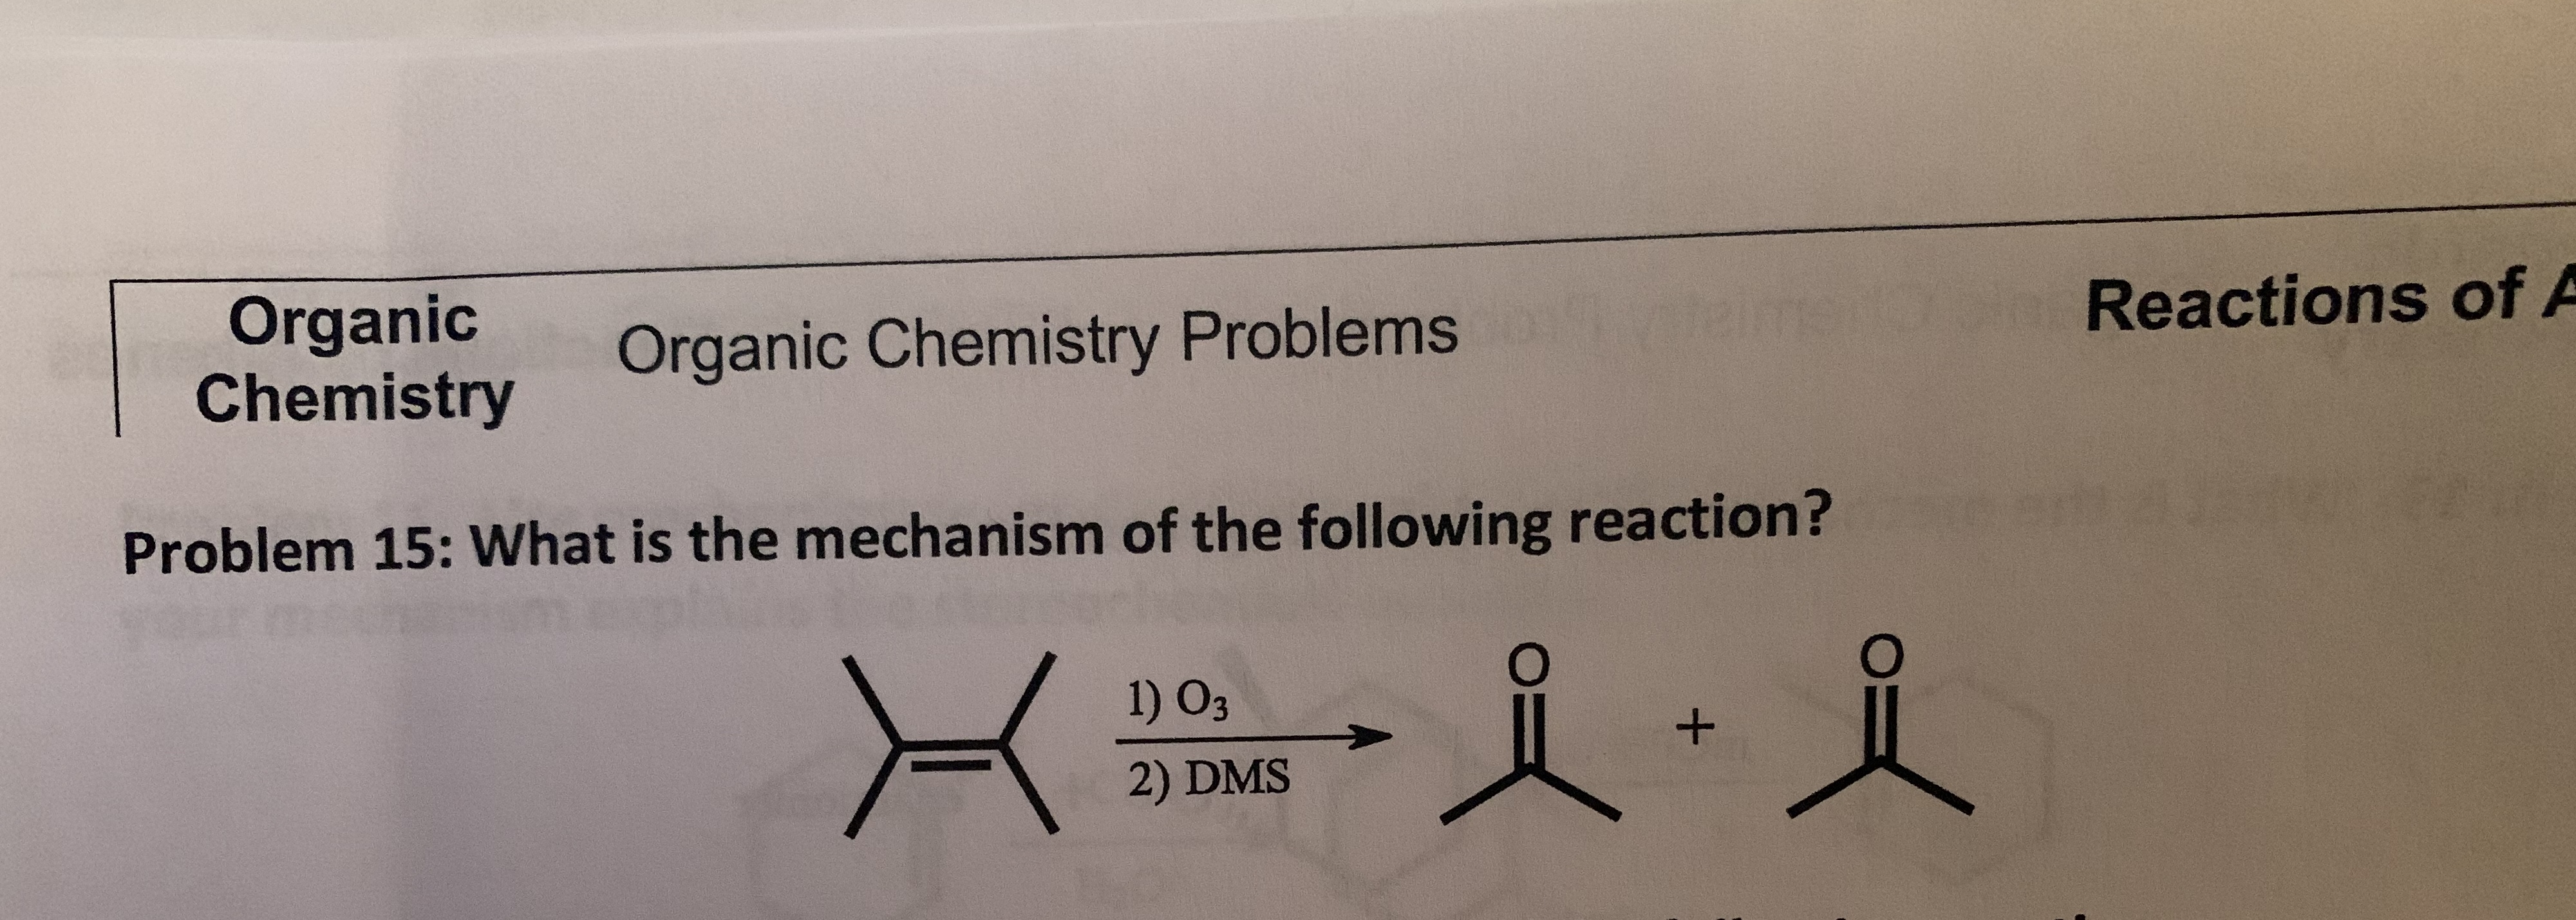 Answered Organic Chemistry Reactions Of A Bartleby